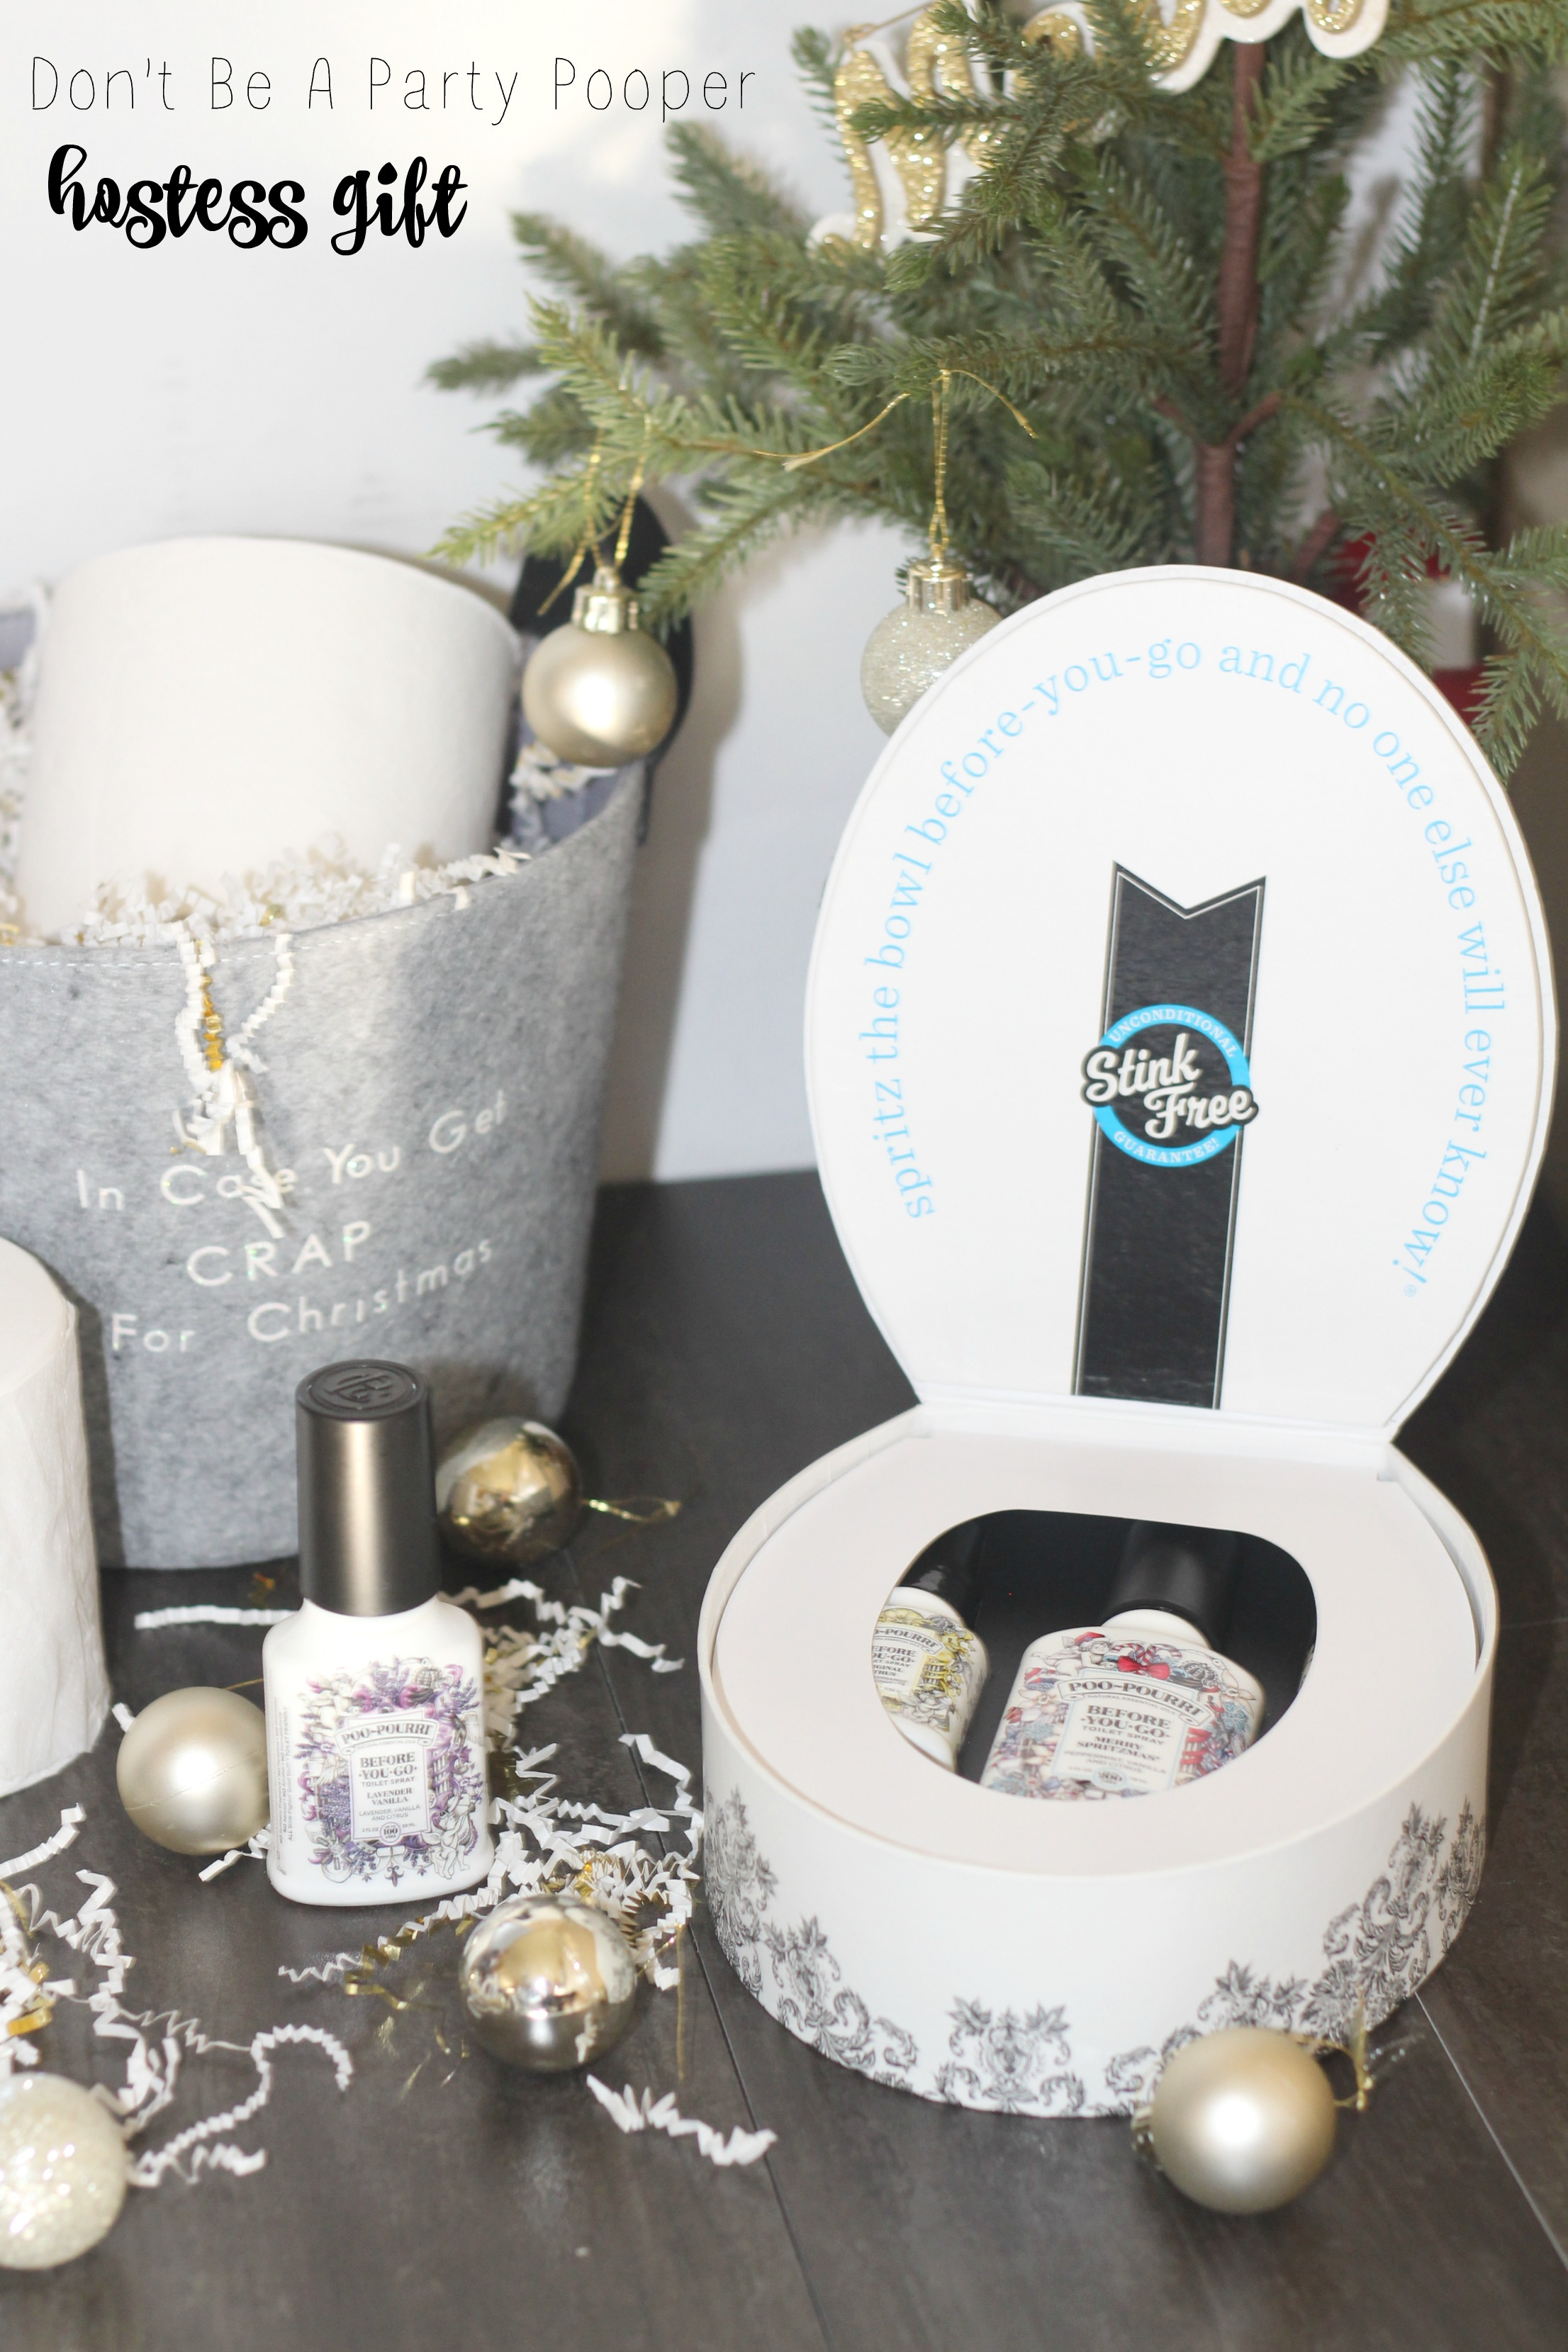 Don't be a Party Pooper -Holiday Hostess Gift Idea